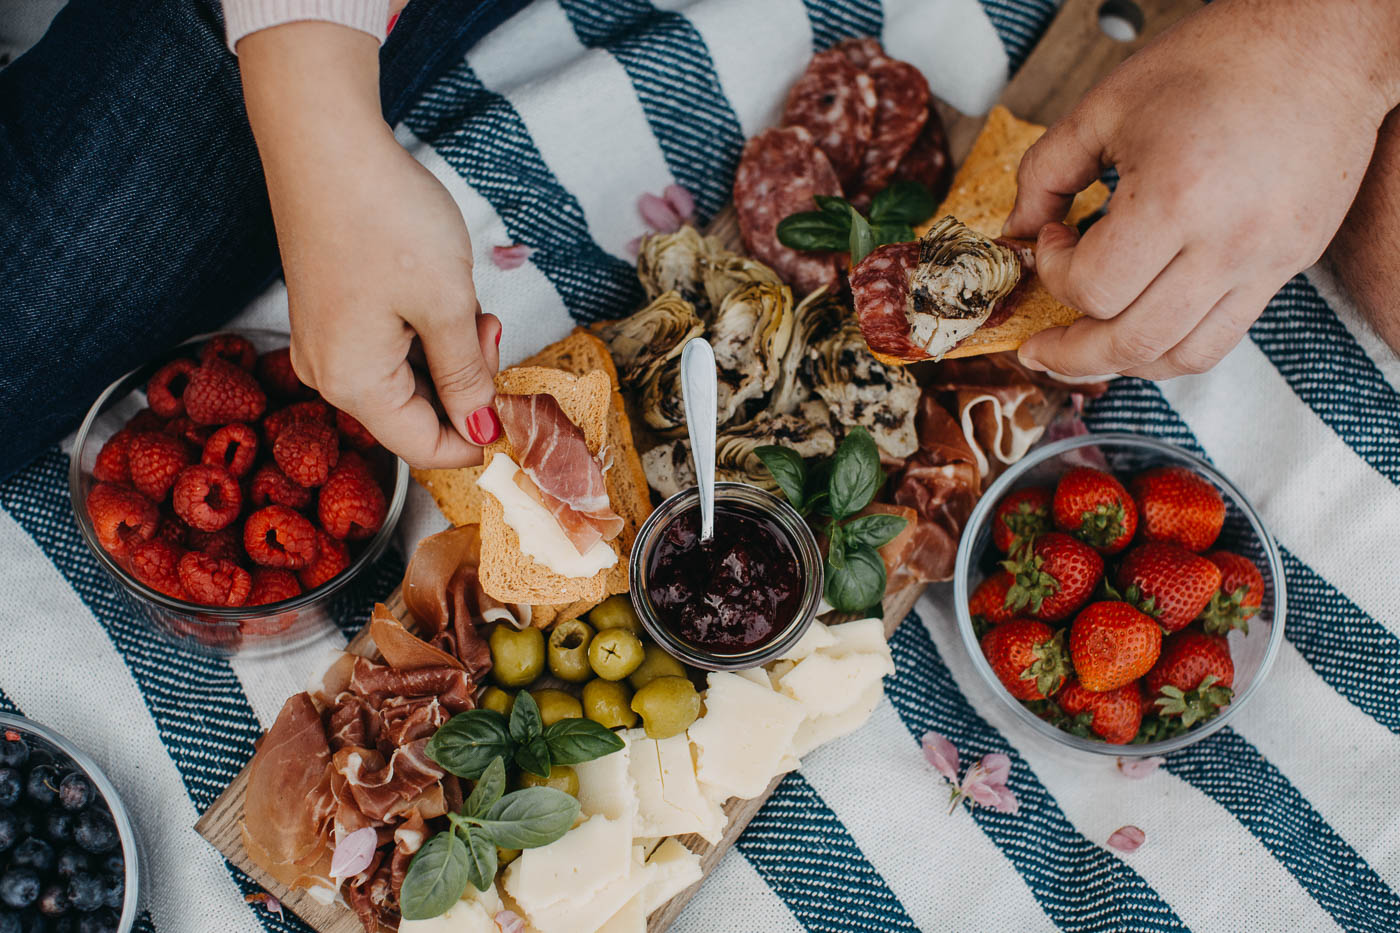 overhead view of a couple seated on a blue striped picnic blanket on the grass next to a lake with a summer picnic charcuterie board for 2. his & her hands are reaching into the board to build bites of charcuterie on crostini crackers.